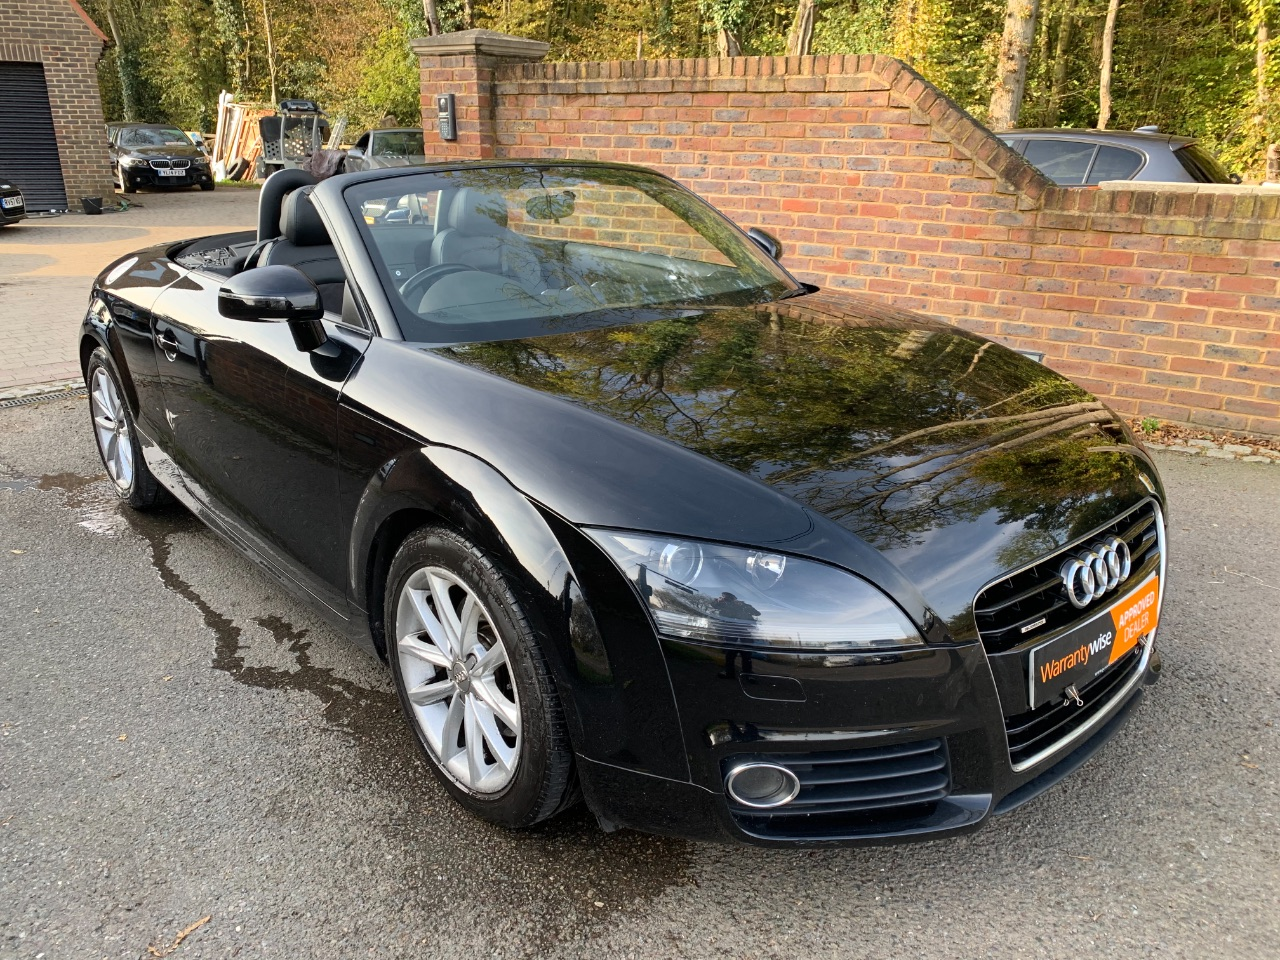 Audi TT 2.0 TDI Quattro Sport 2dr [2011] Convertible Diesel Black at A Touch of Class Kingsnorth